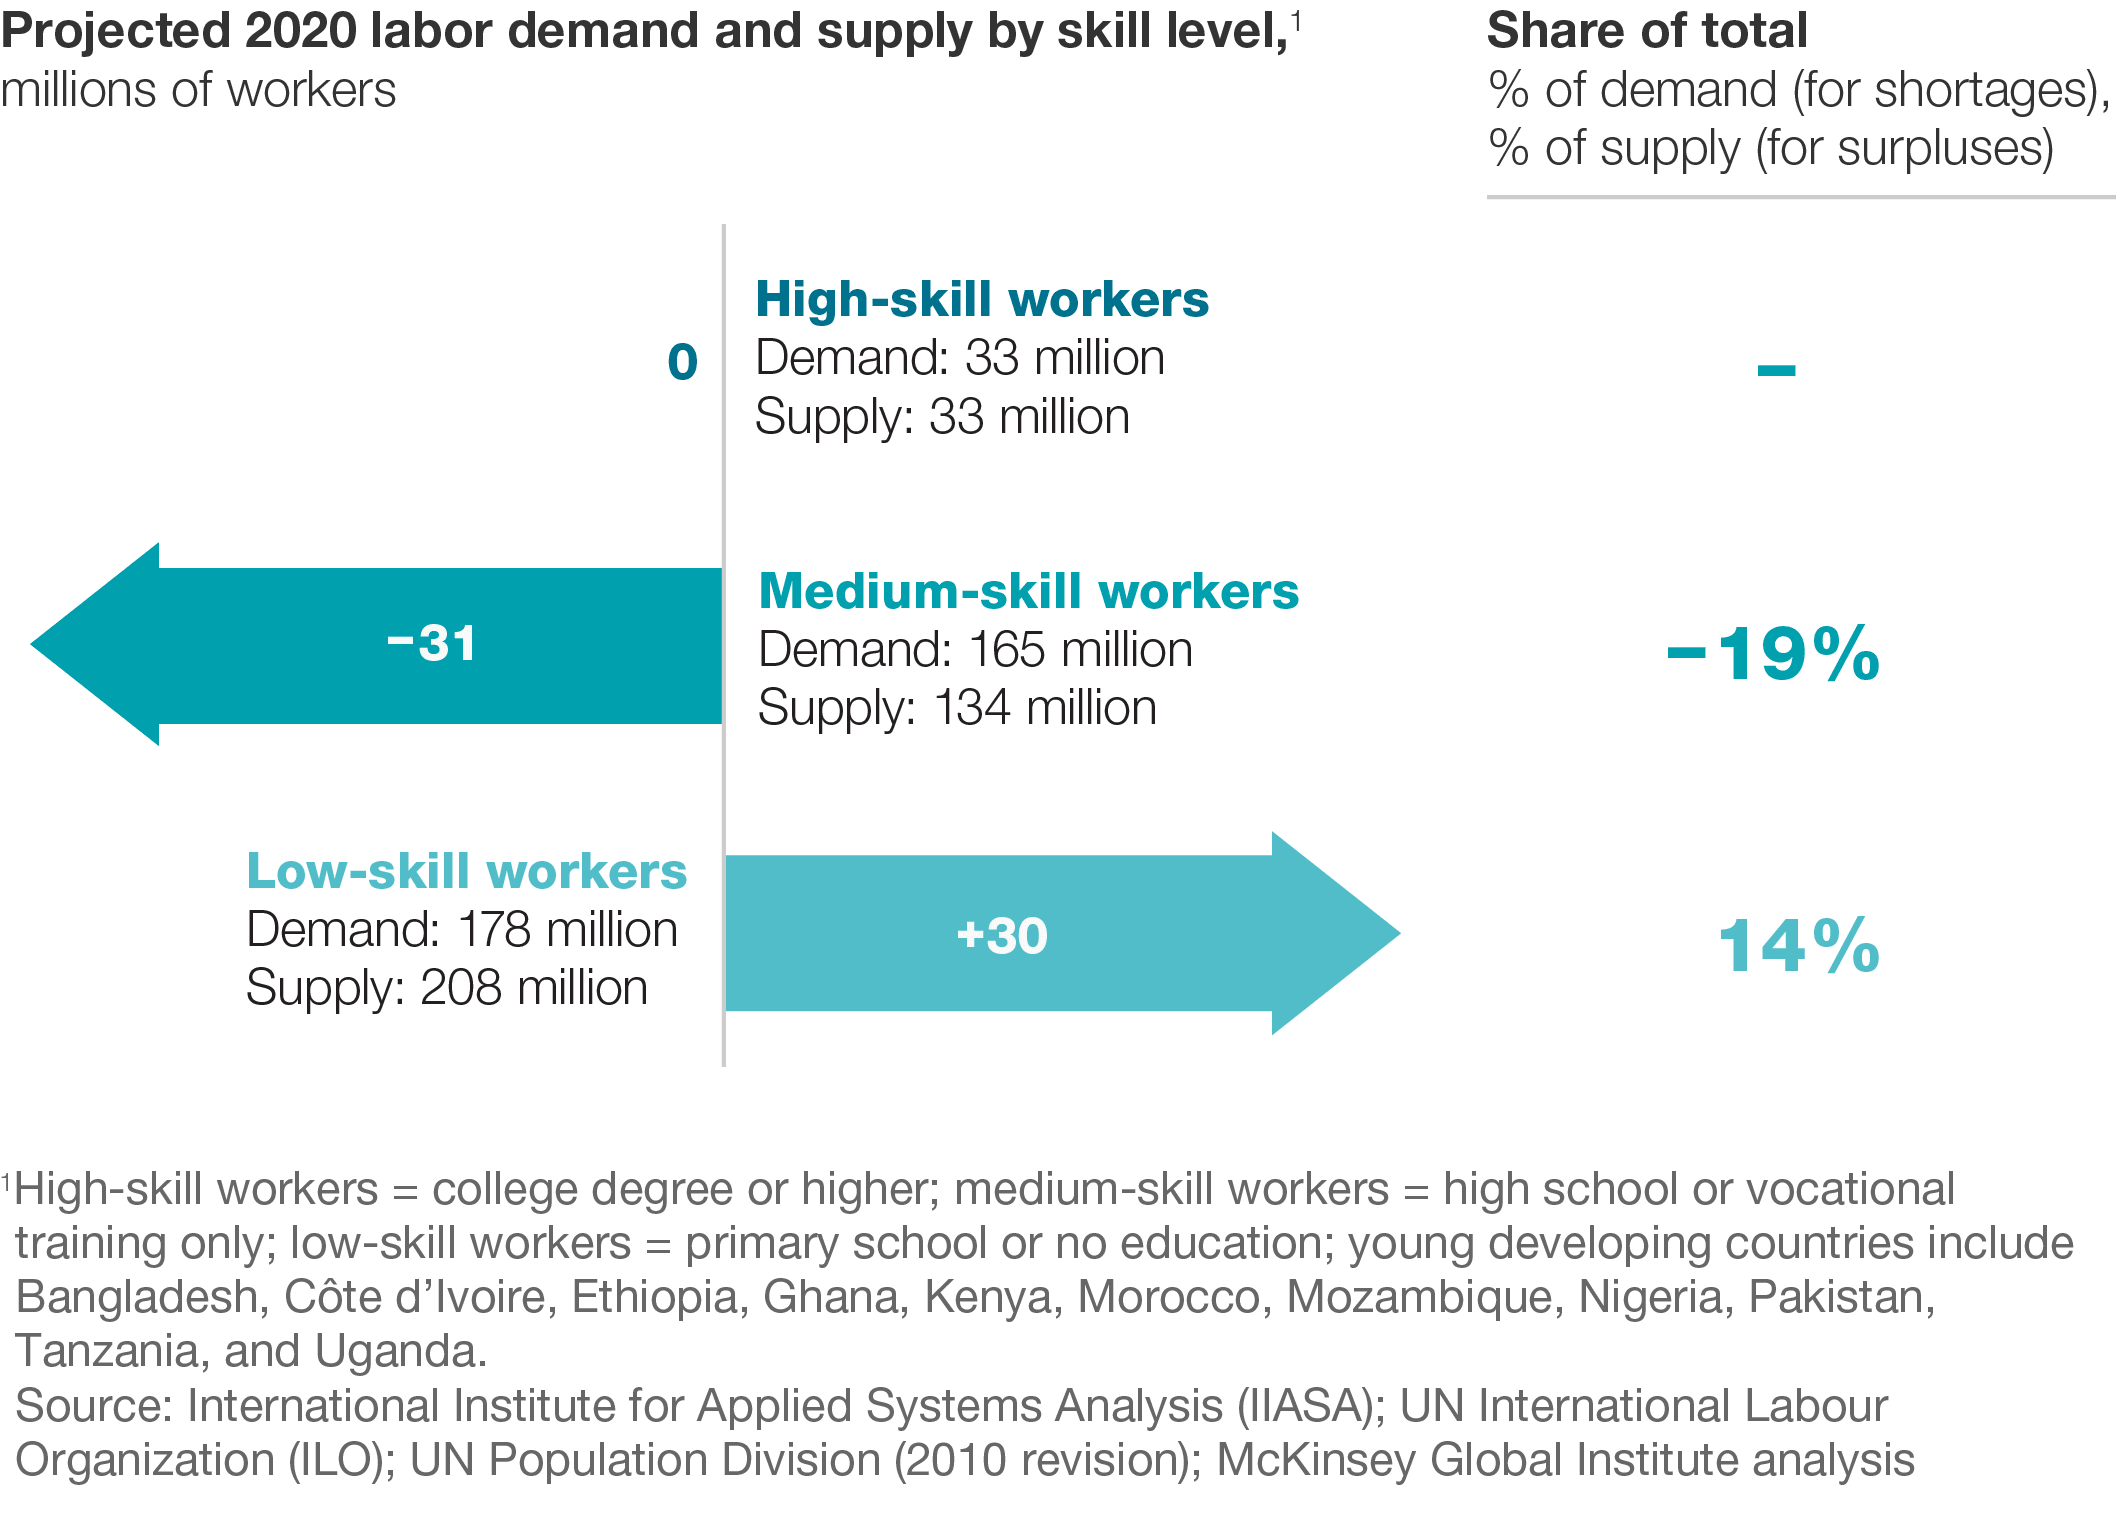 talent tensions ahead a ceo briefing company young developing economies face a shortage of medium skill workers along an excess supply of low skill workers